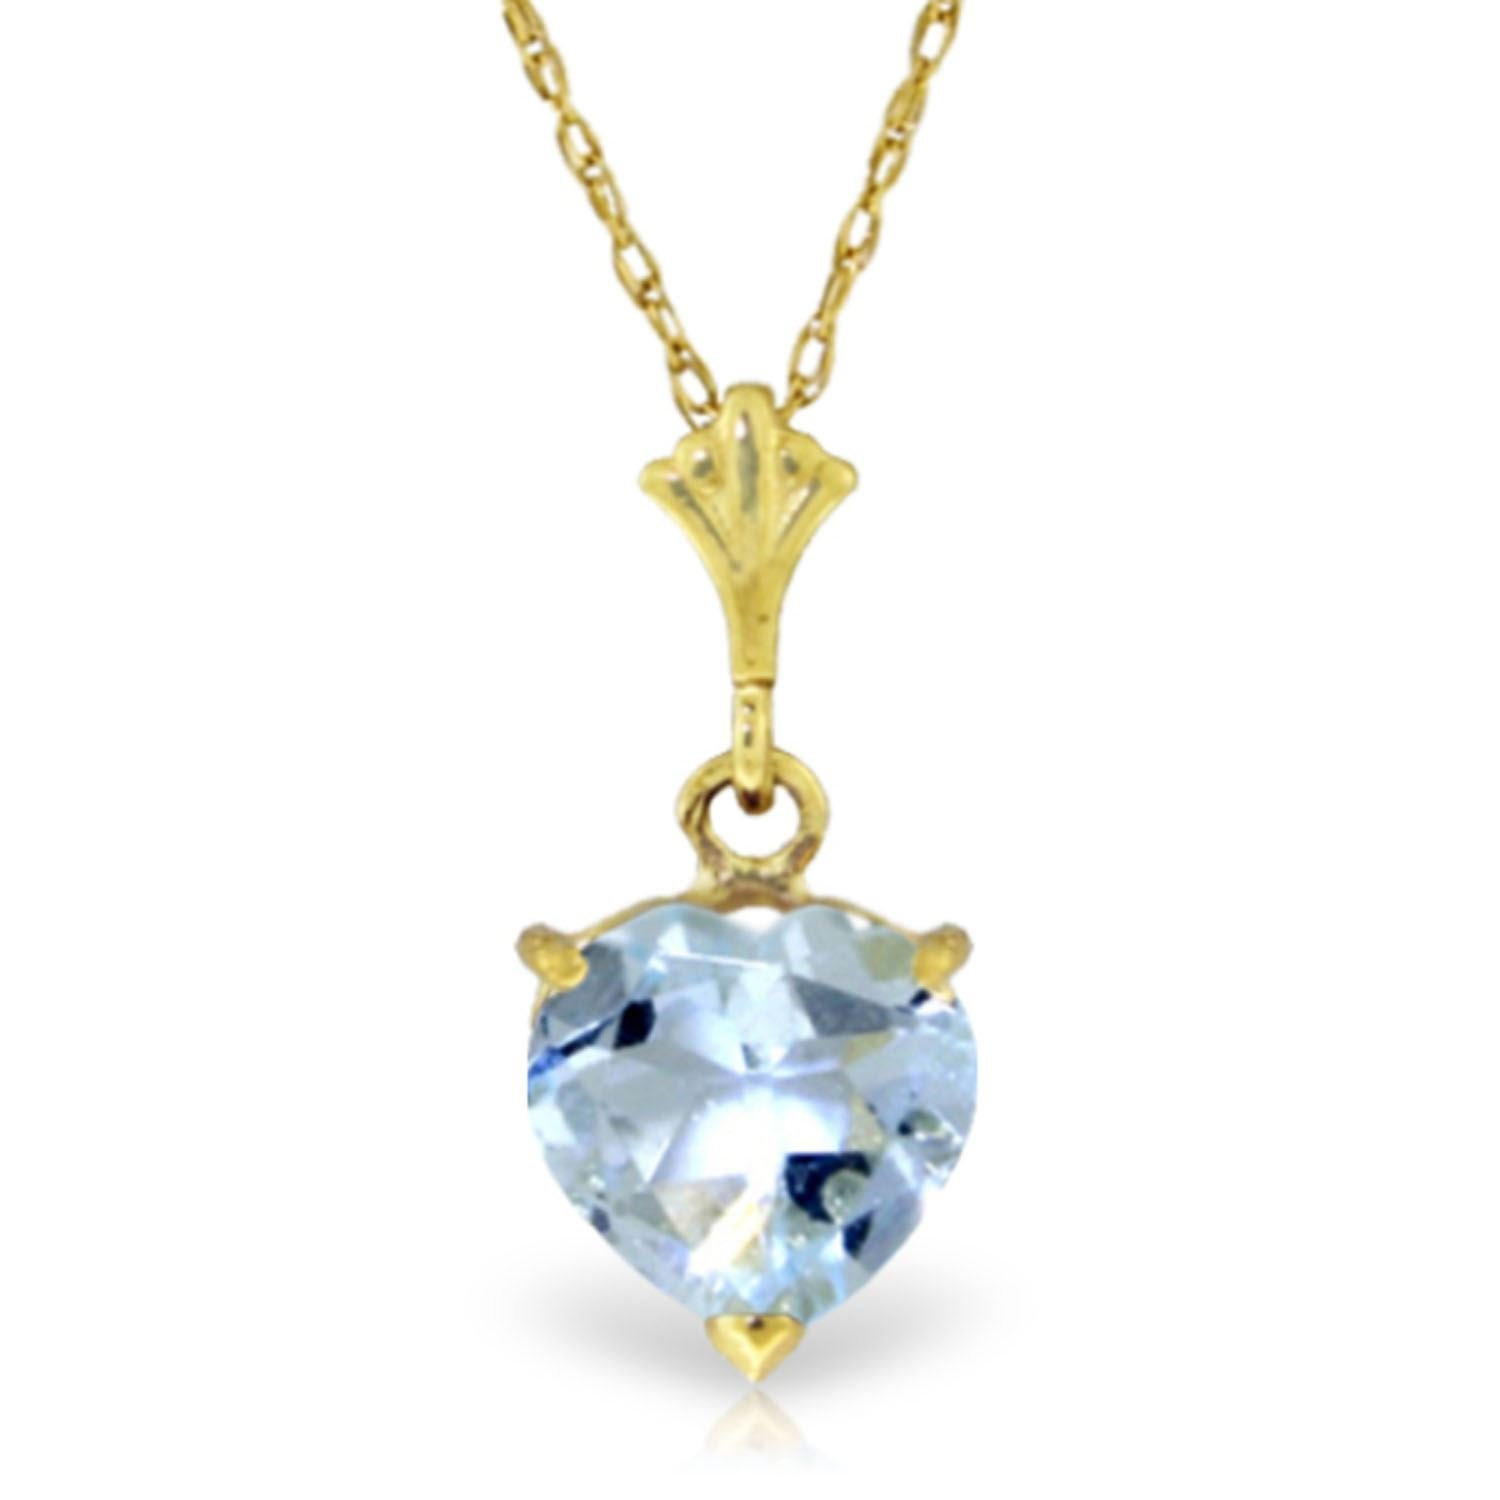 ALARRI 1.15 CTW 14K Solid Gold Love Foundation Aquamarine Necklace with 18 Inch Chain Length